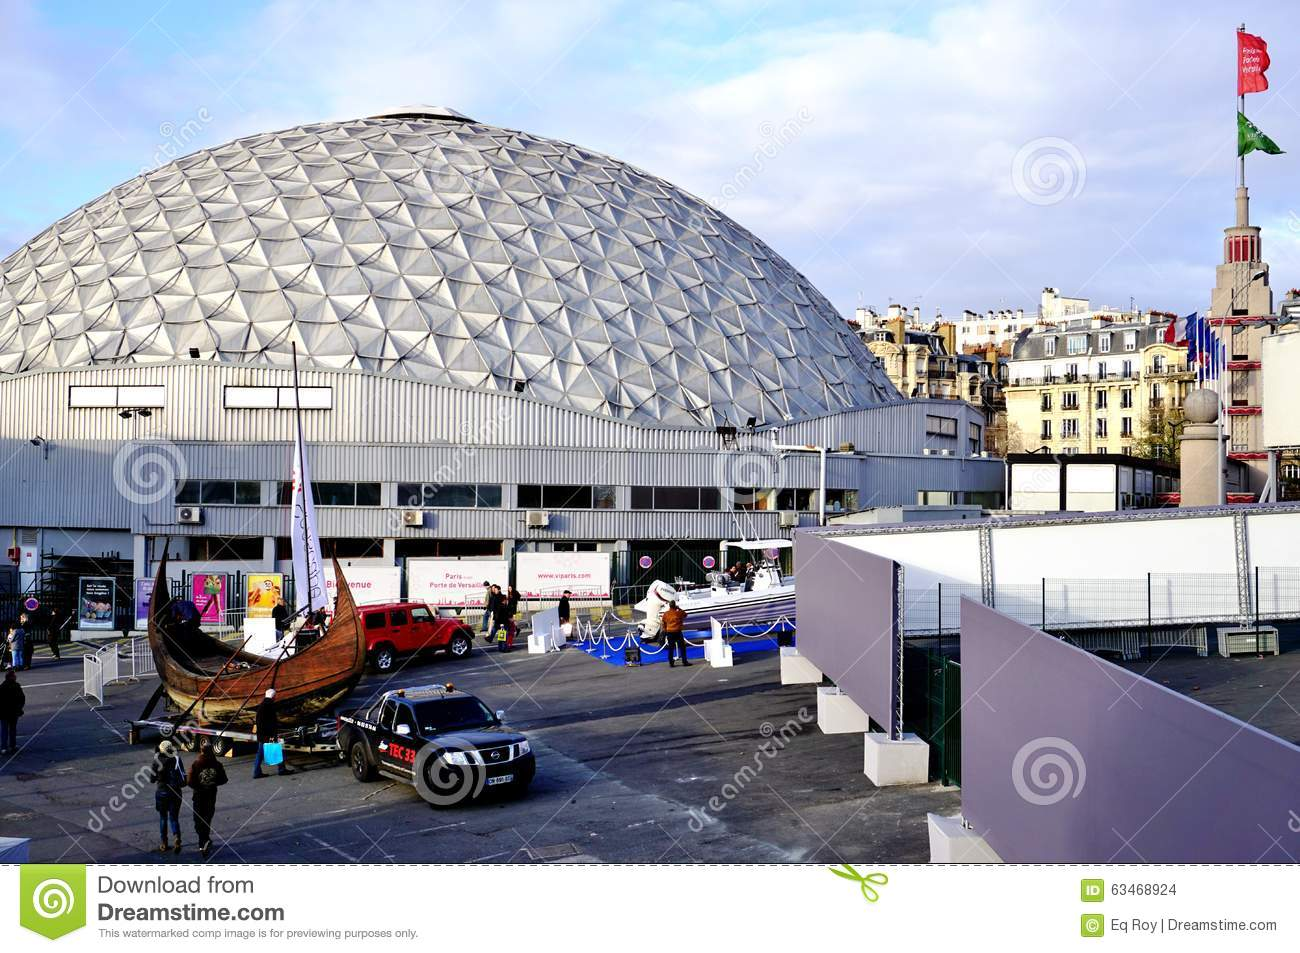 The parc des expositions de la porte de versailles paris for Salon porte de versailles hall 4